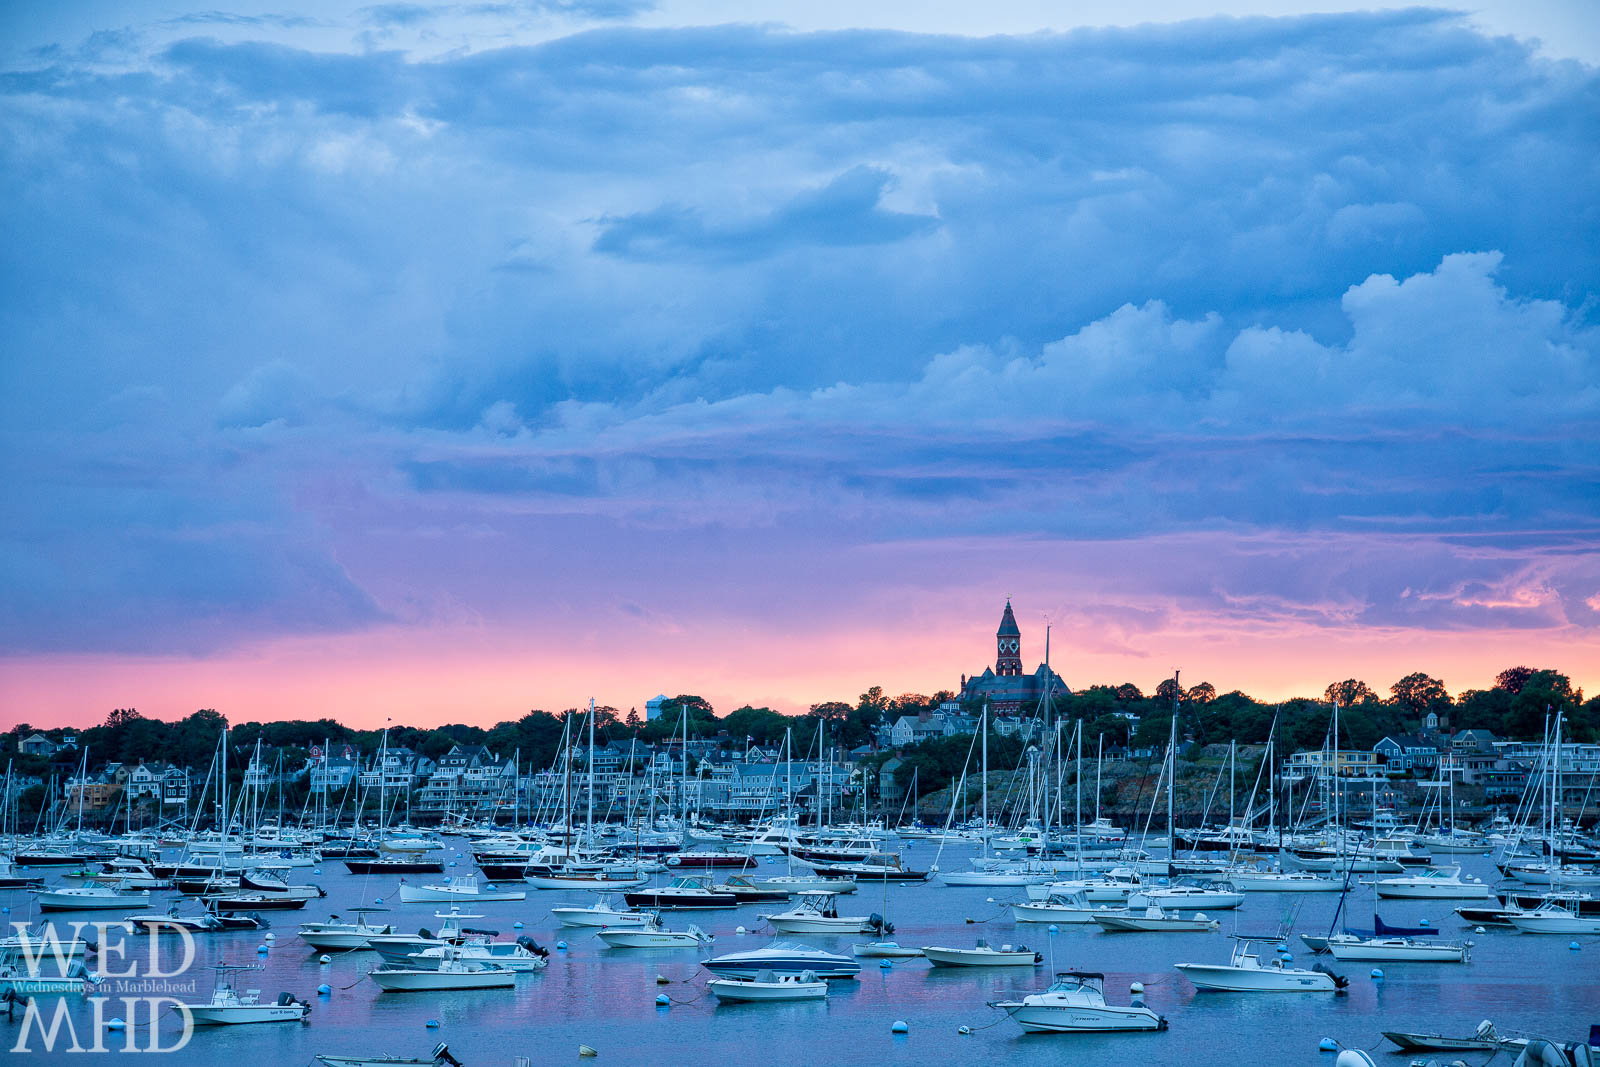 A full harbor and beautiful skyline make for unrivaled summer sunsets in Marblehead